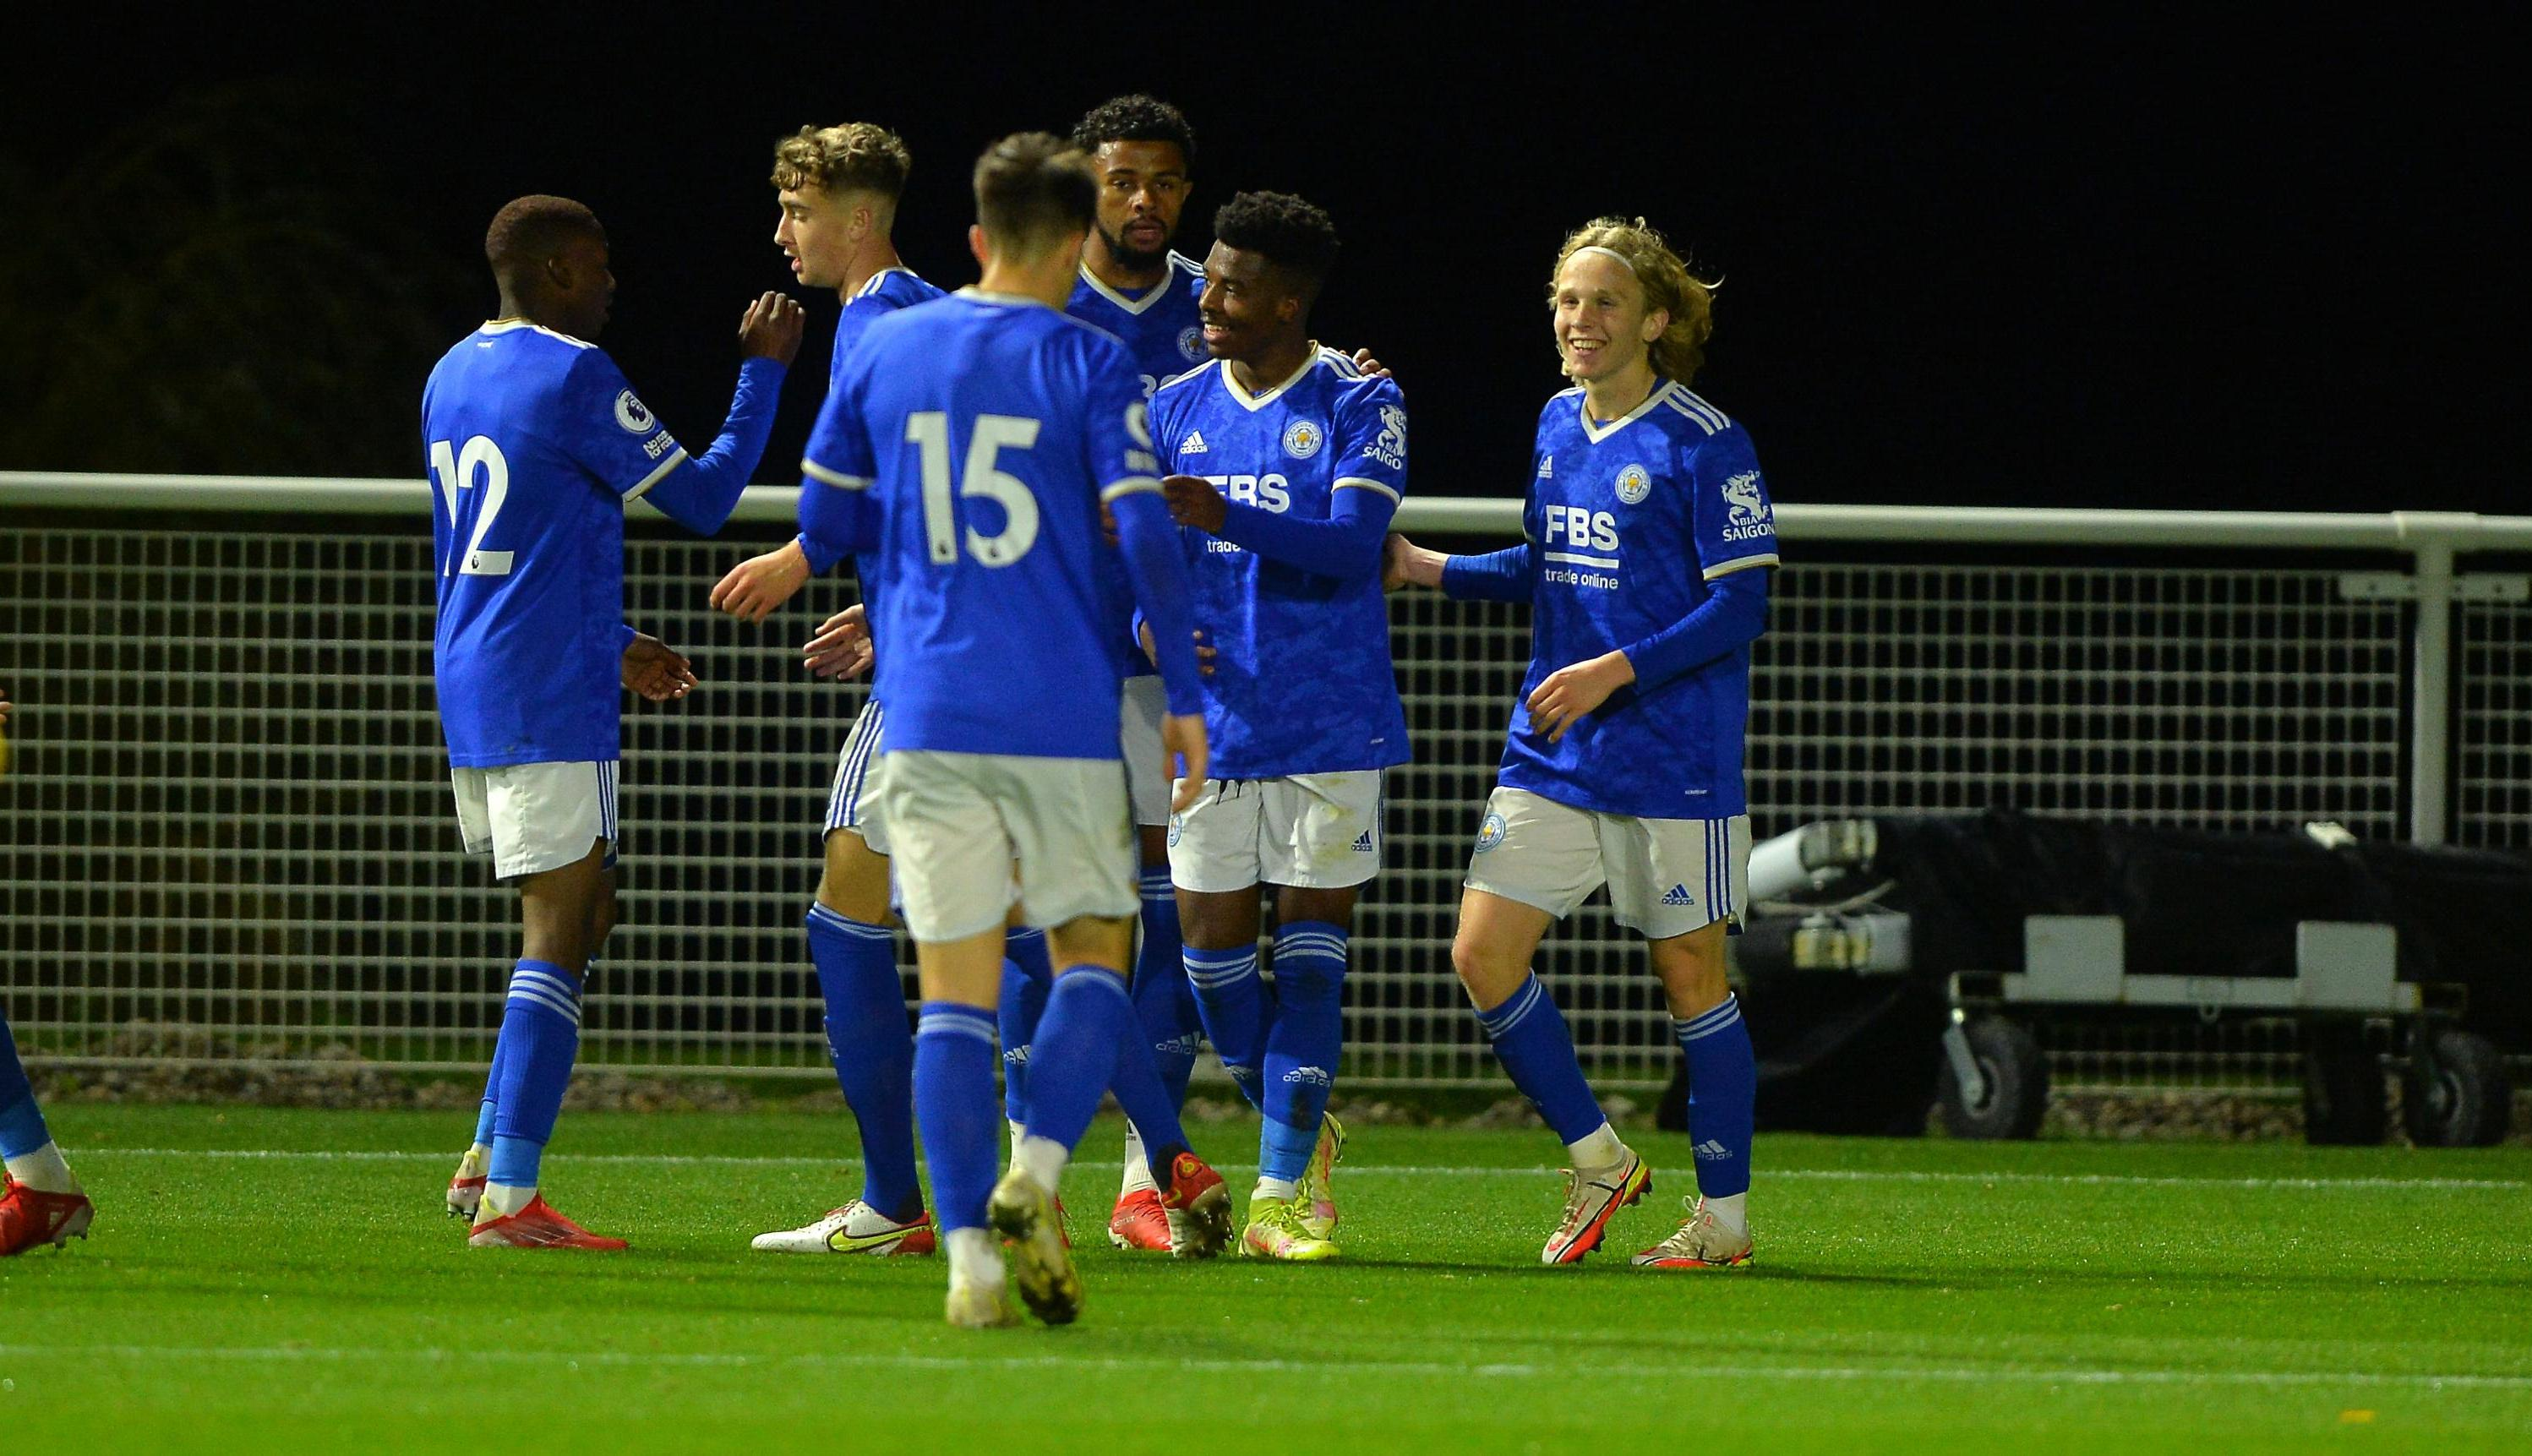 City Settle For A Point In PL2 Bout With Chelsea